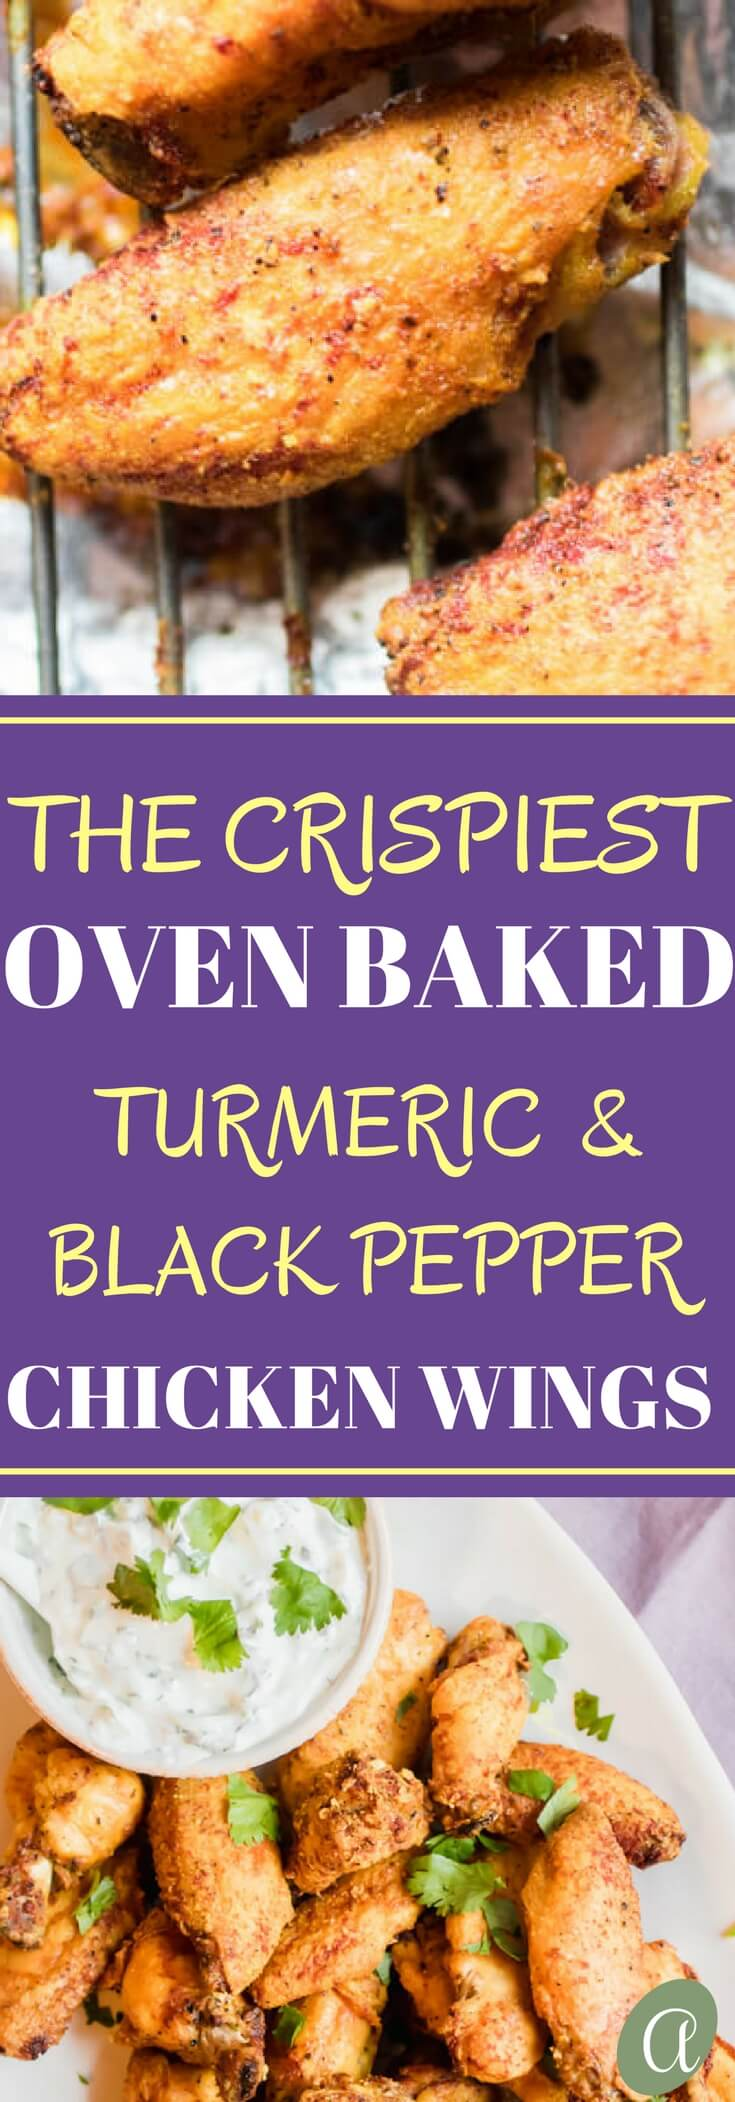 The crispiest oven baked healthy chicken wings with a turmeric black pepper spice rub!t Served with a tangy yogurt dipping sauce. You won't believe how good this recipe is!